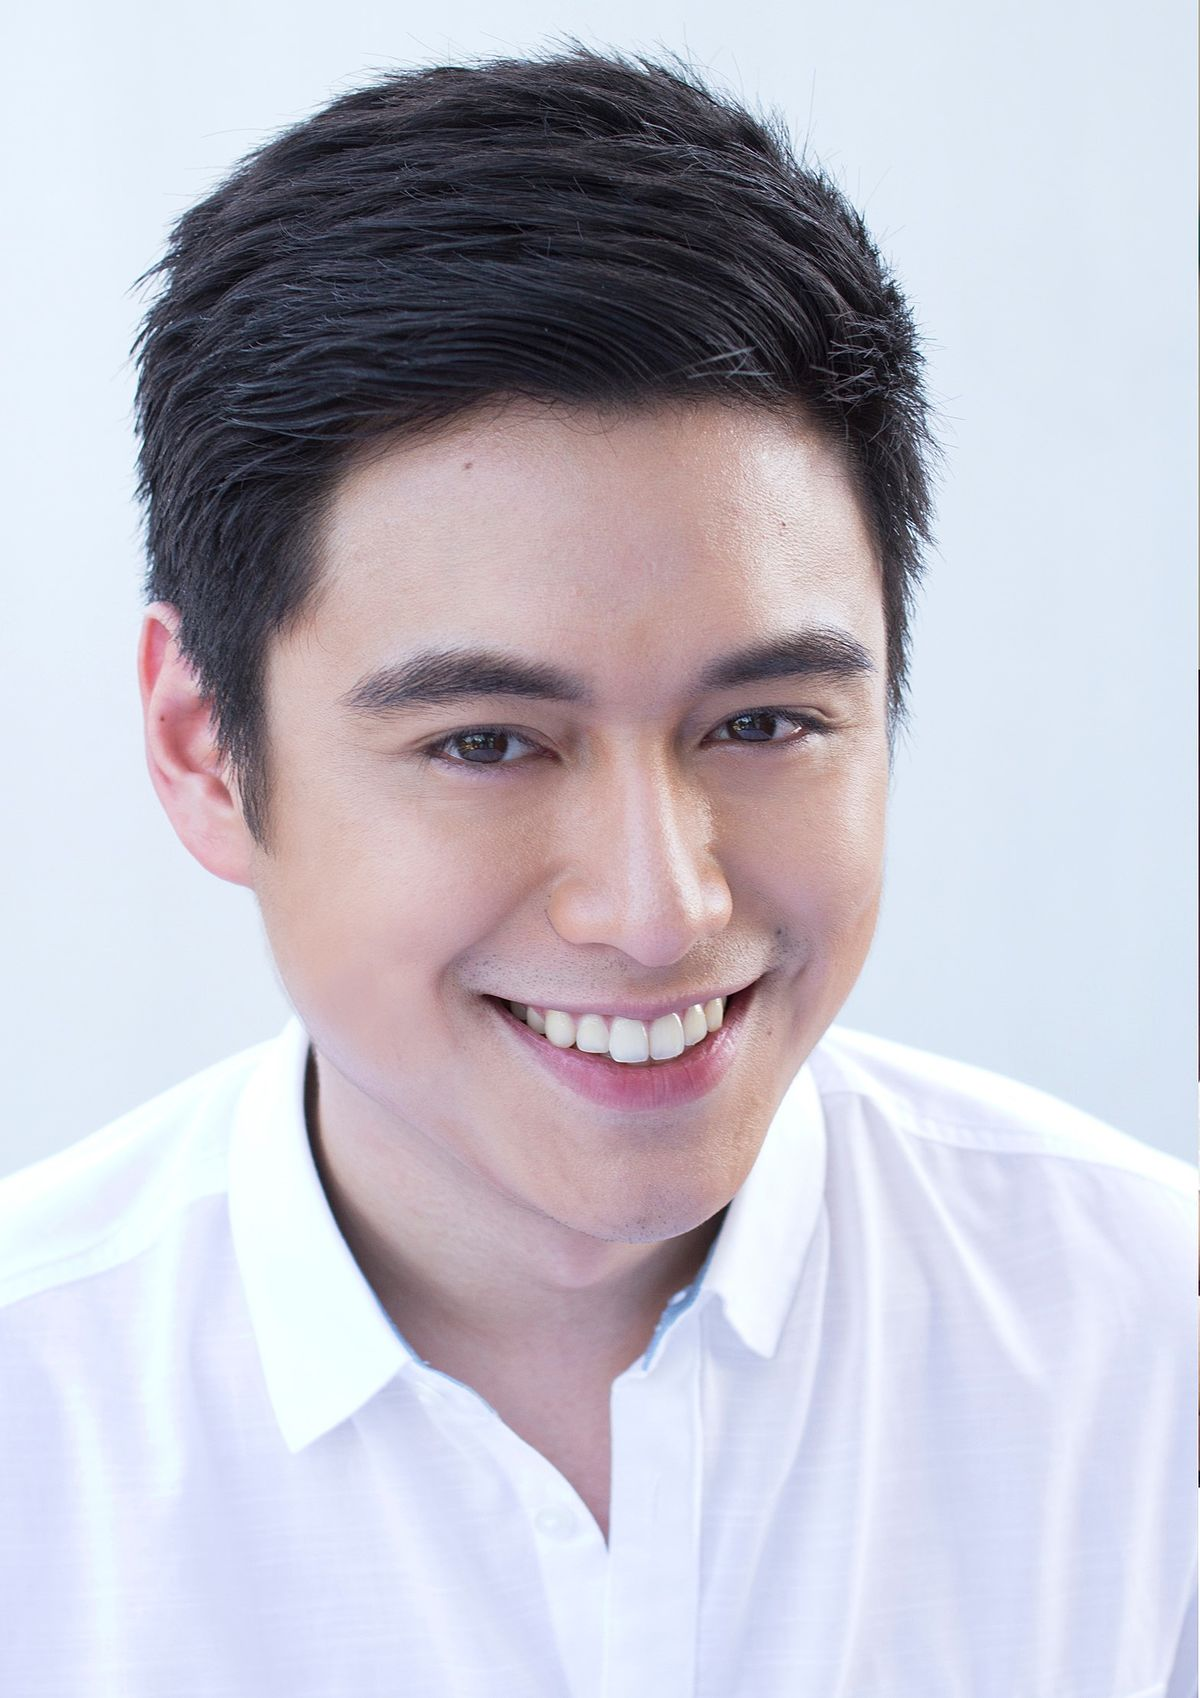 Jacob Benedicto - Wikipedia